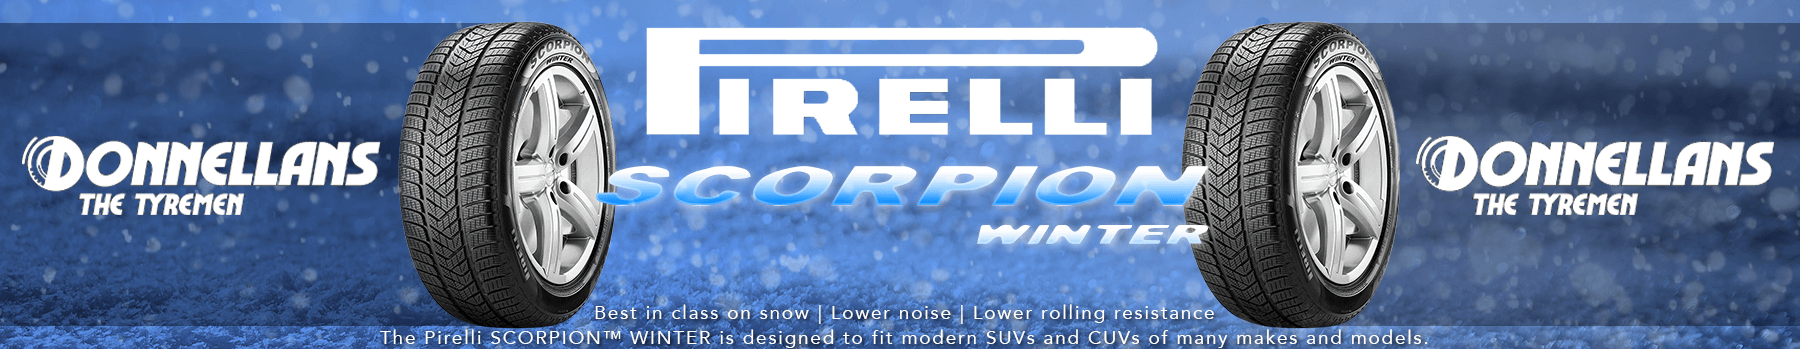 pirelli scorpion winter banner